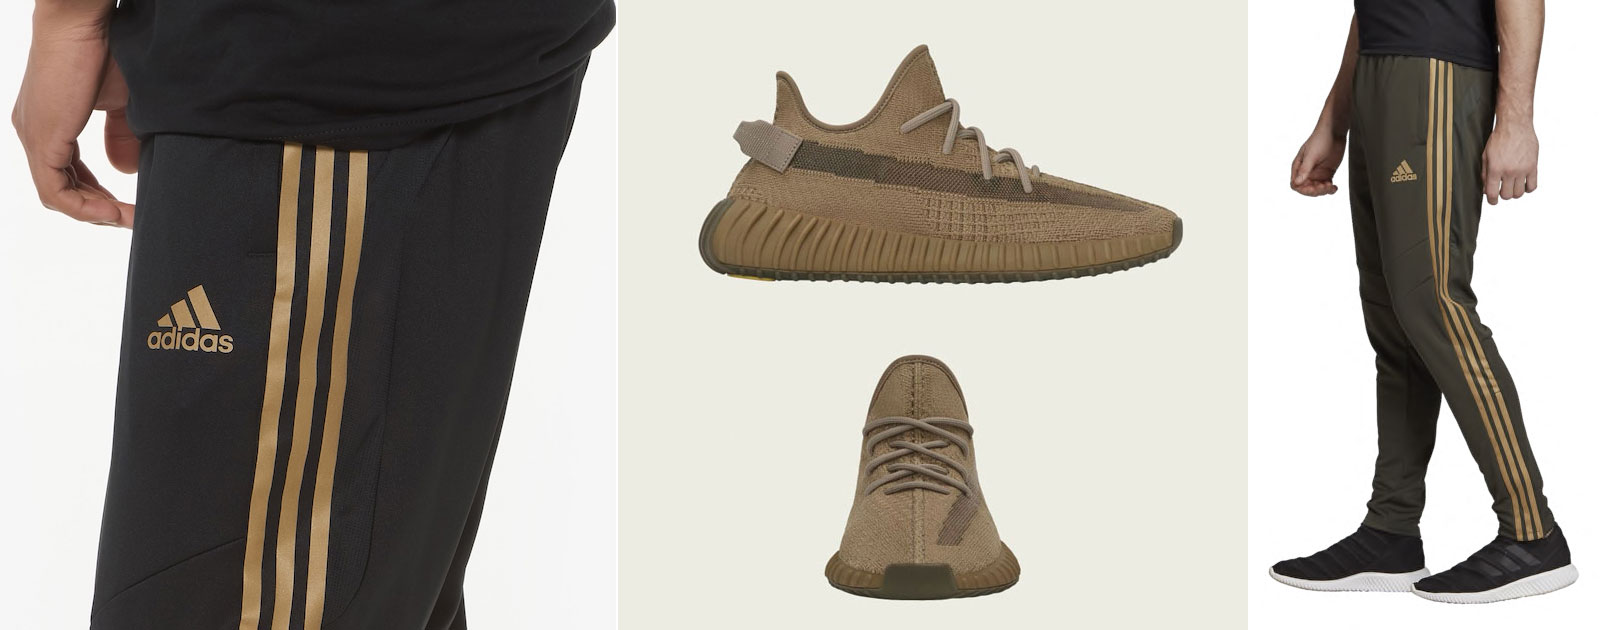 yeezy-boost-350-v2-earth-pants-to-match